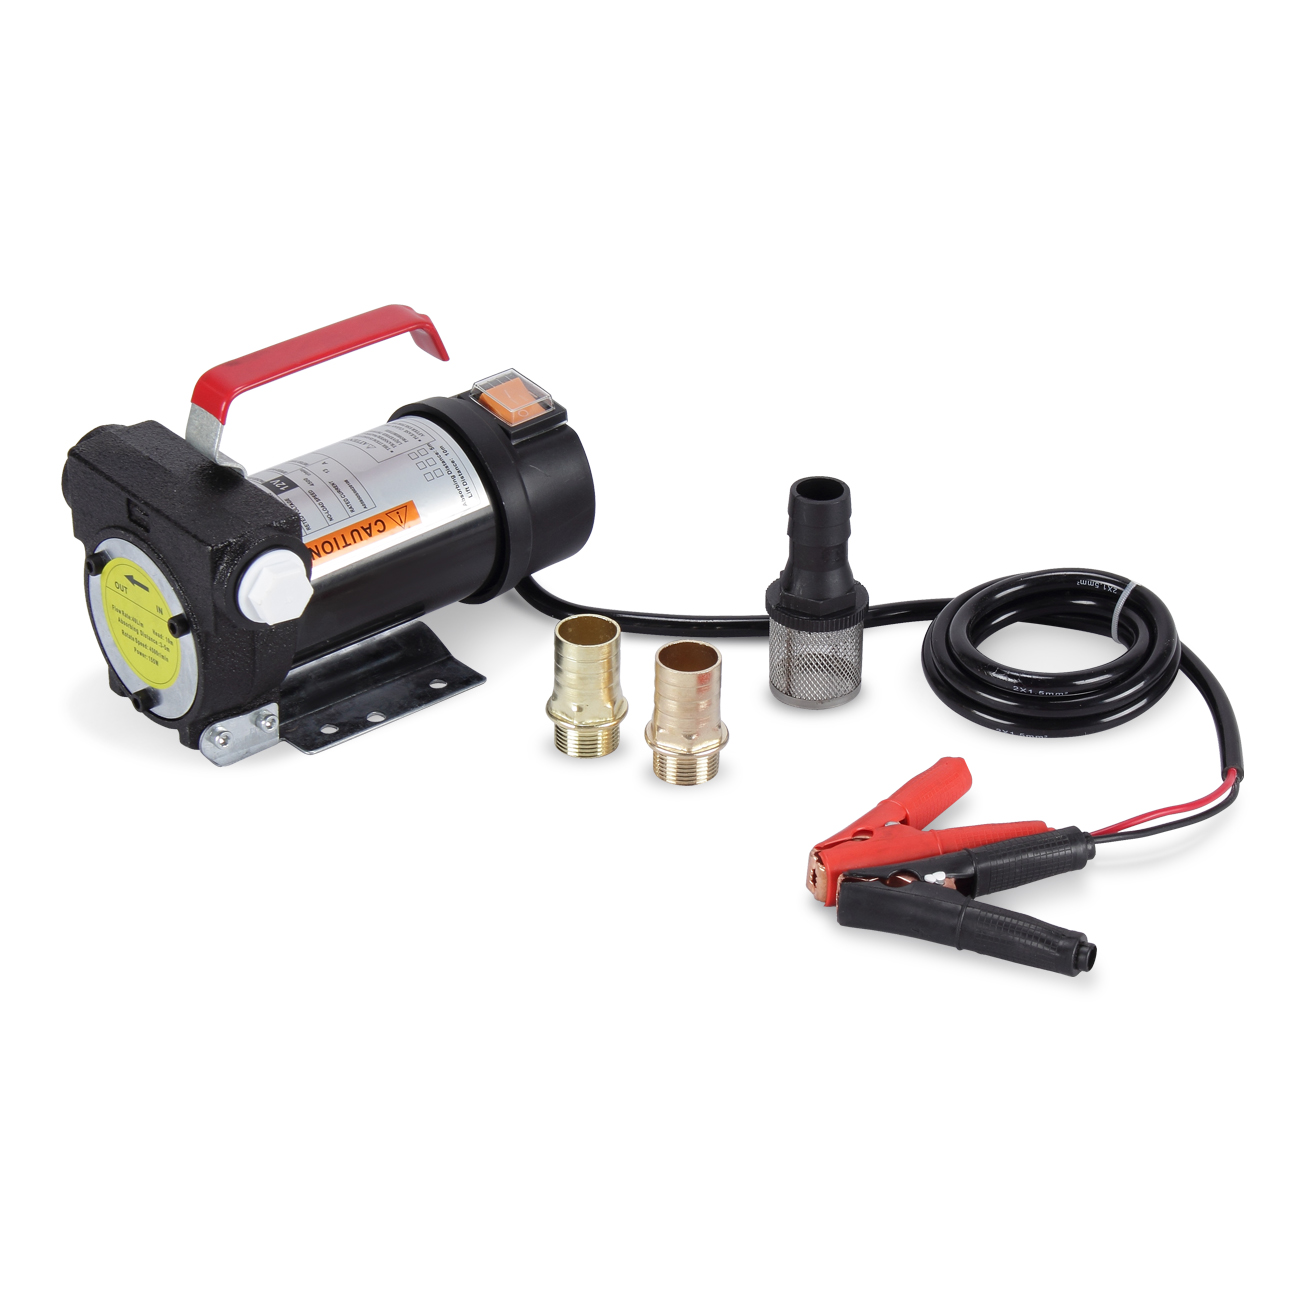 ARKSEN DC 12V 10GPM Electric Diesel Oil Fuel Transfer Extractor Pump 12-Volt Battery Powered